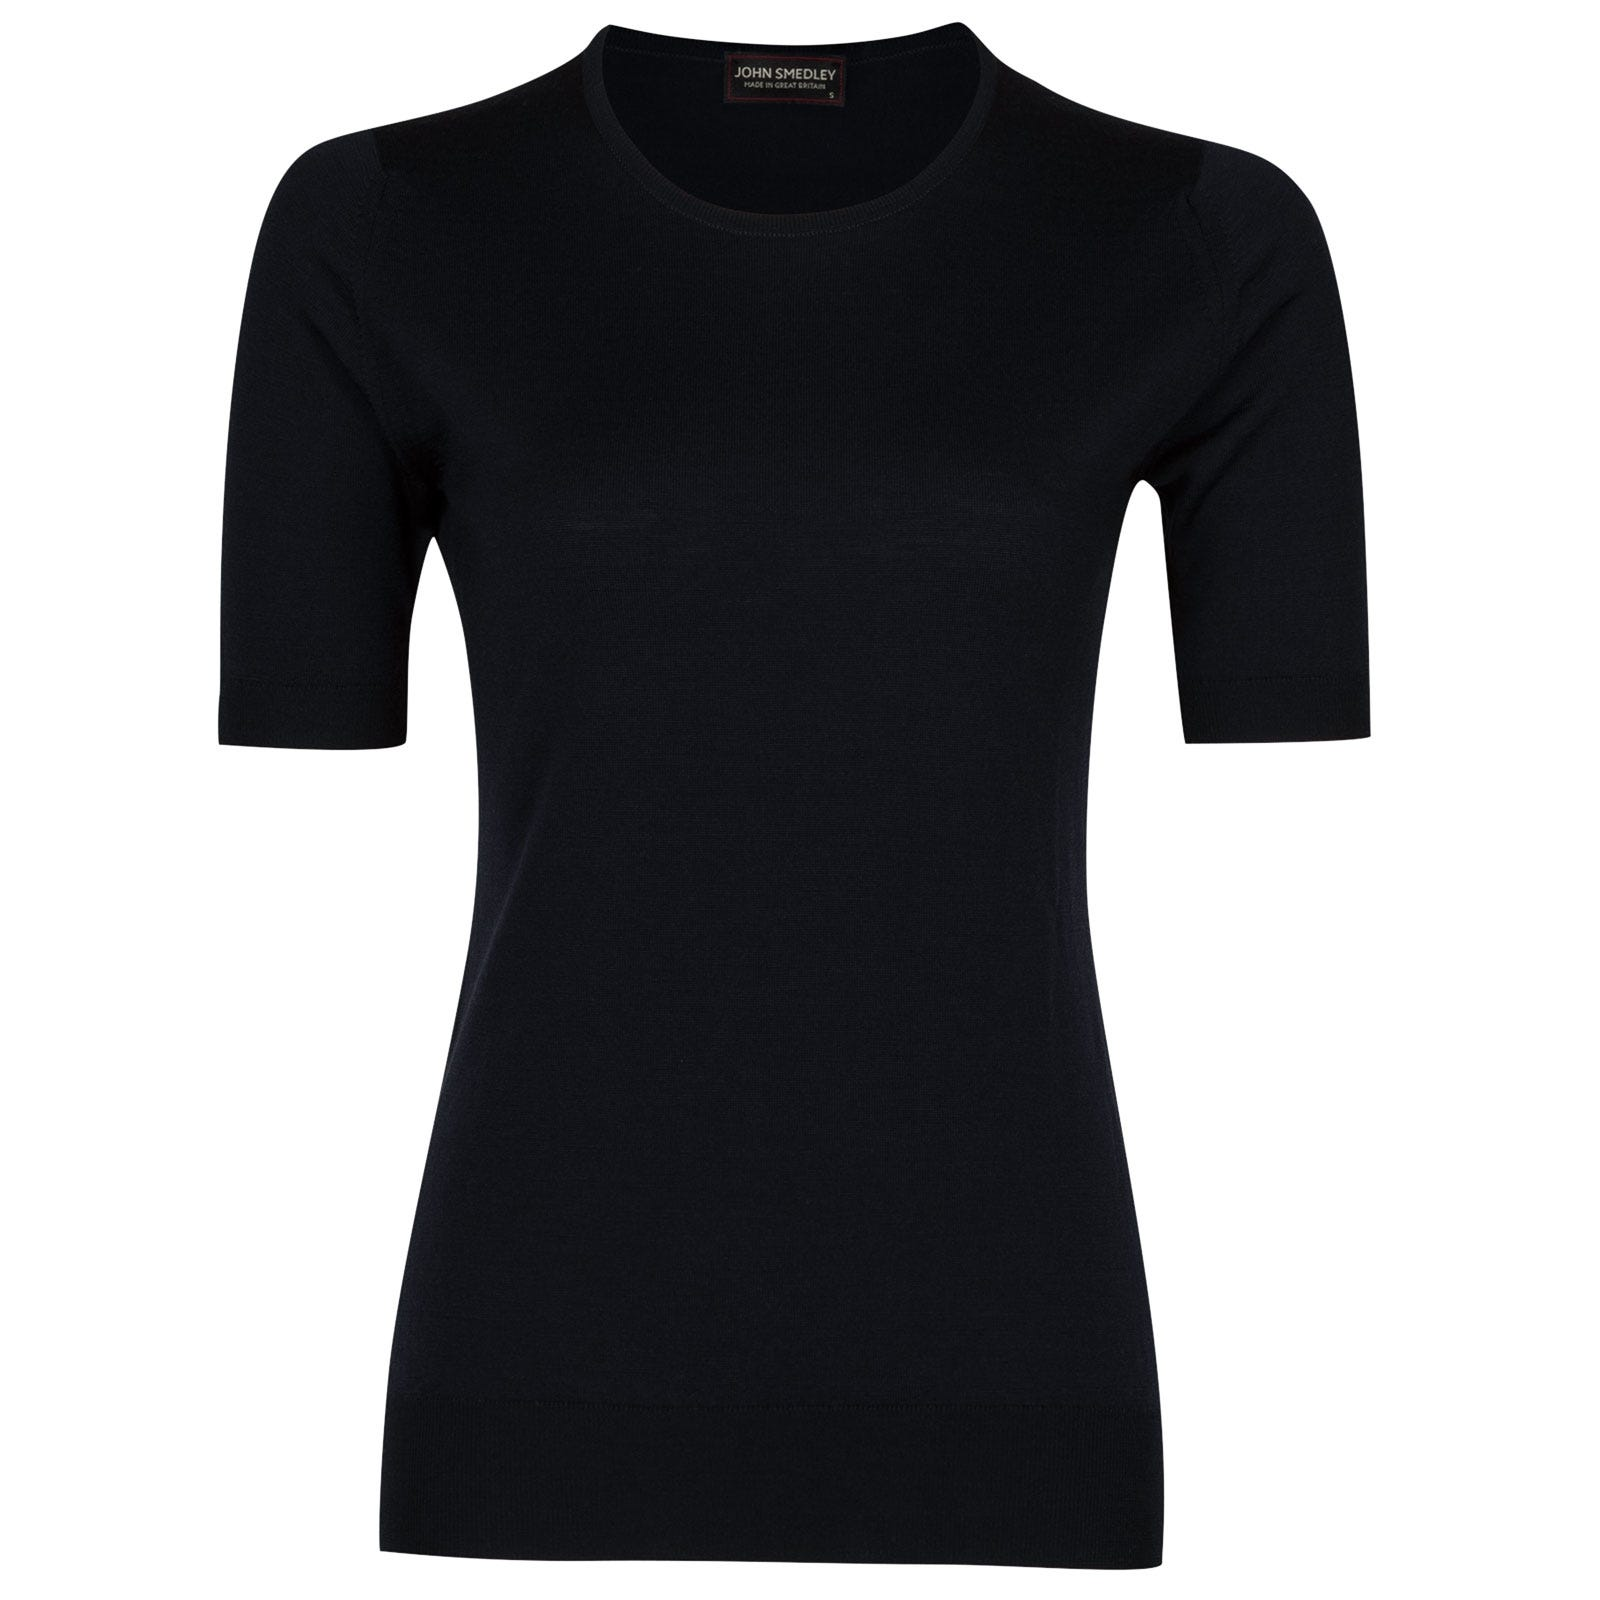 John Smedley rietta Merino Wool Sweater in Midnight-M